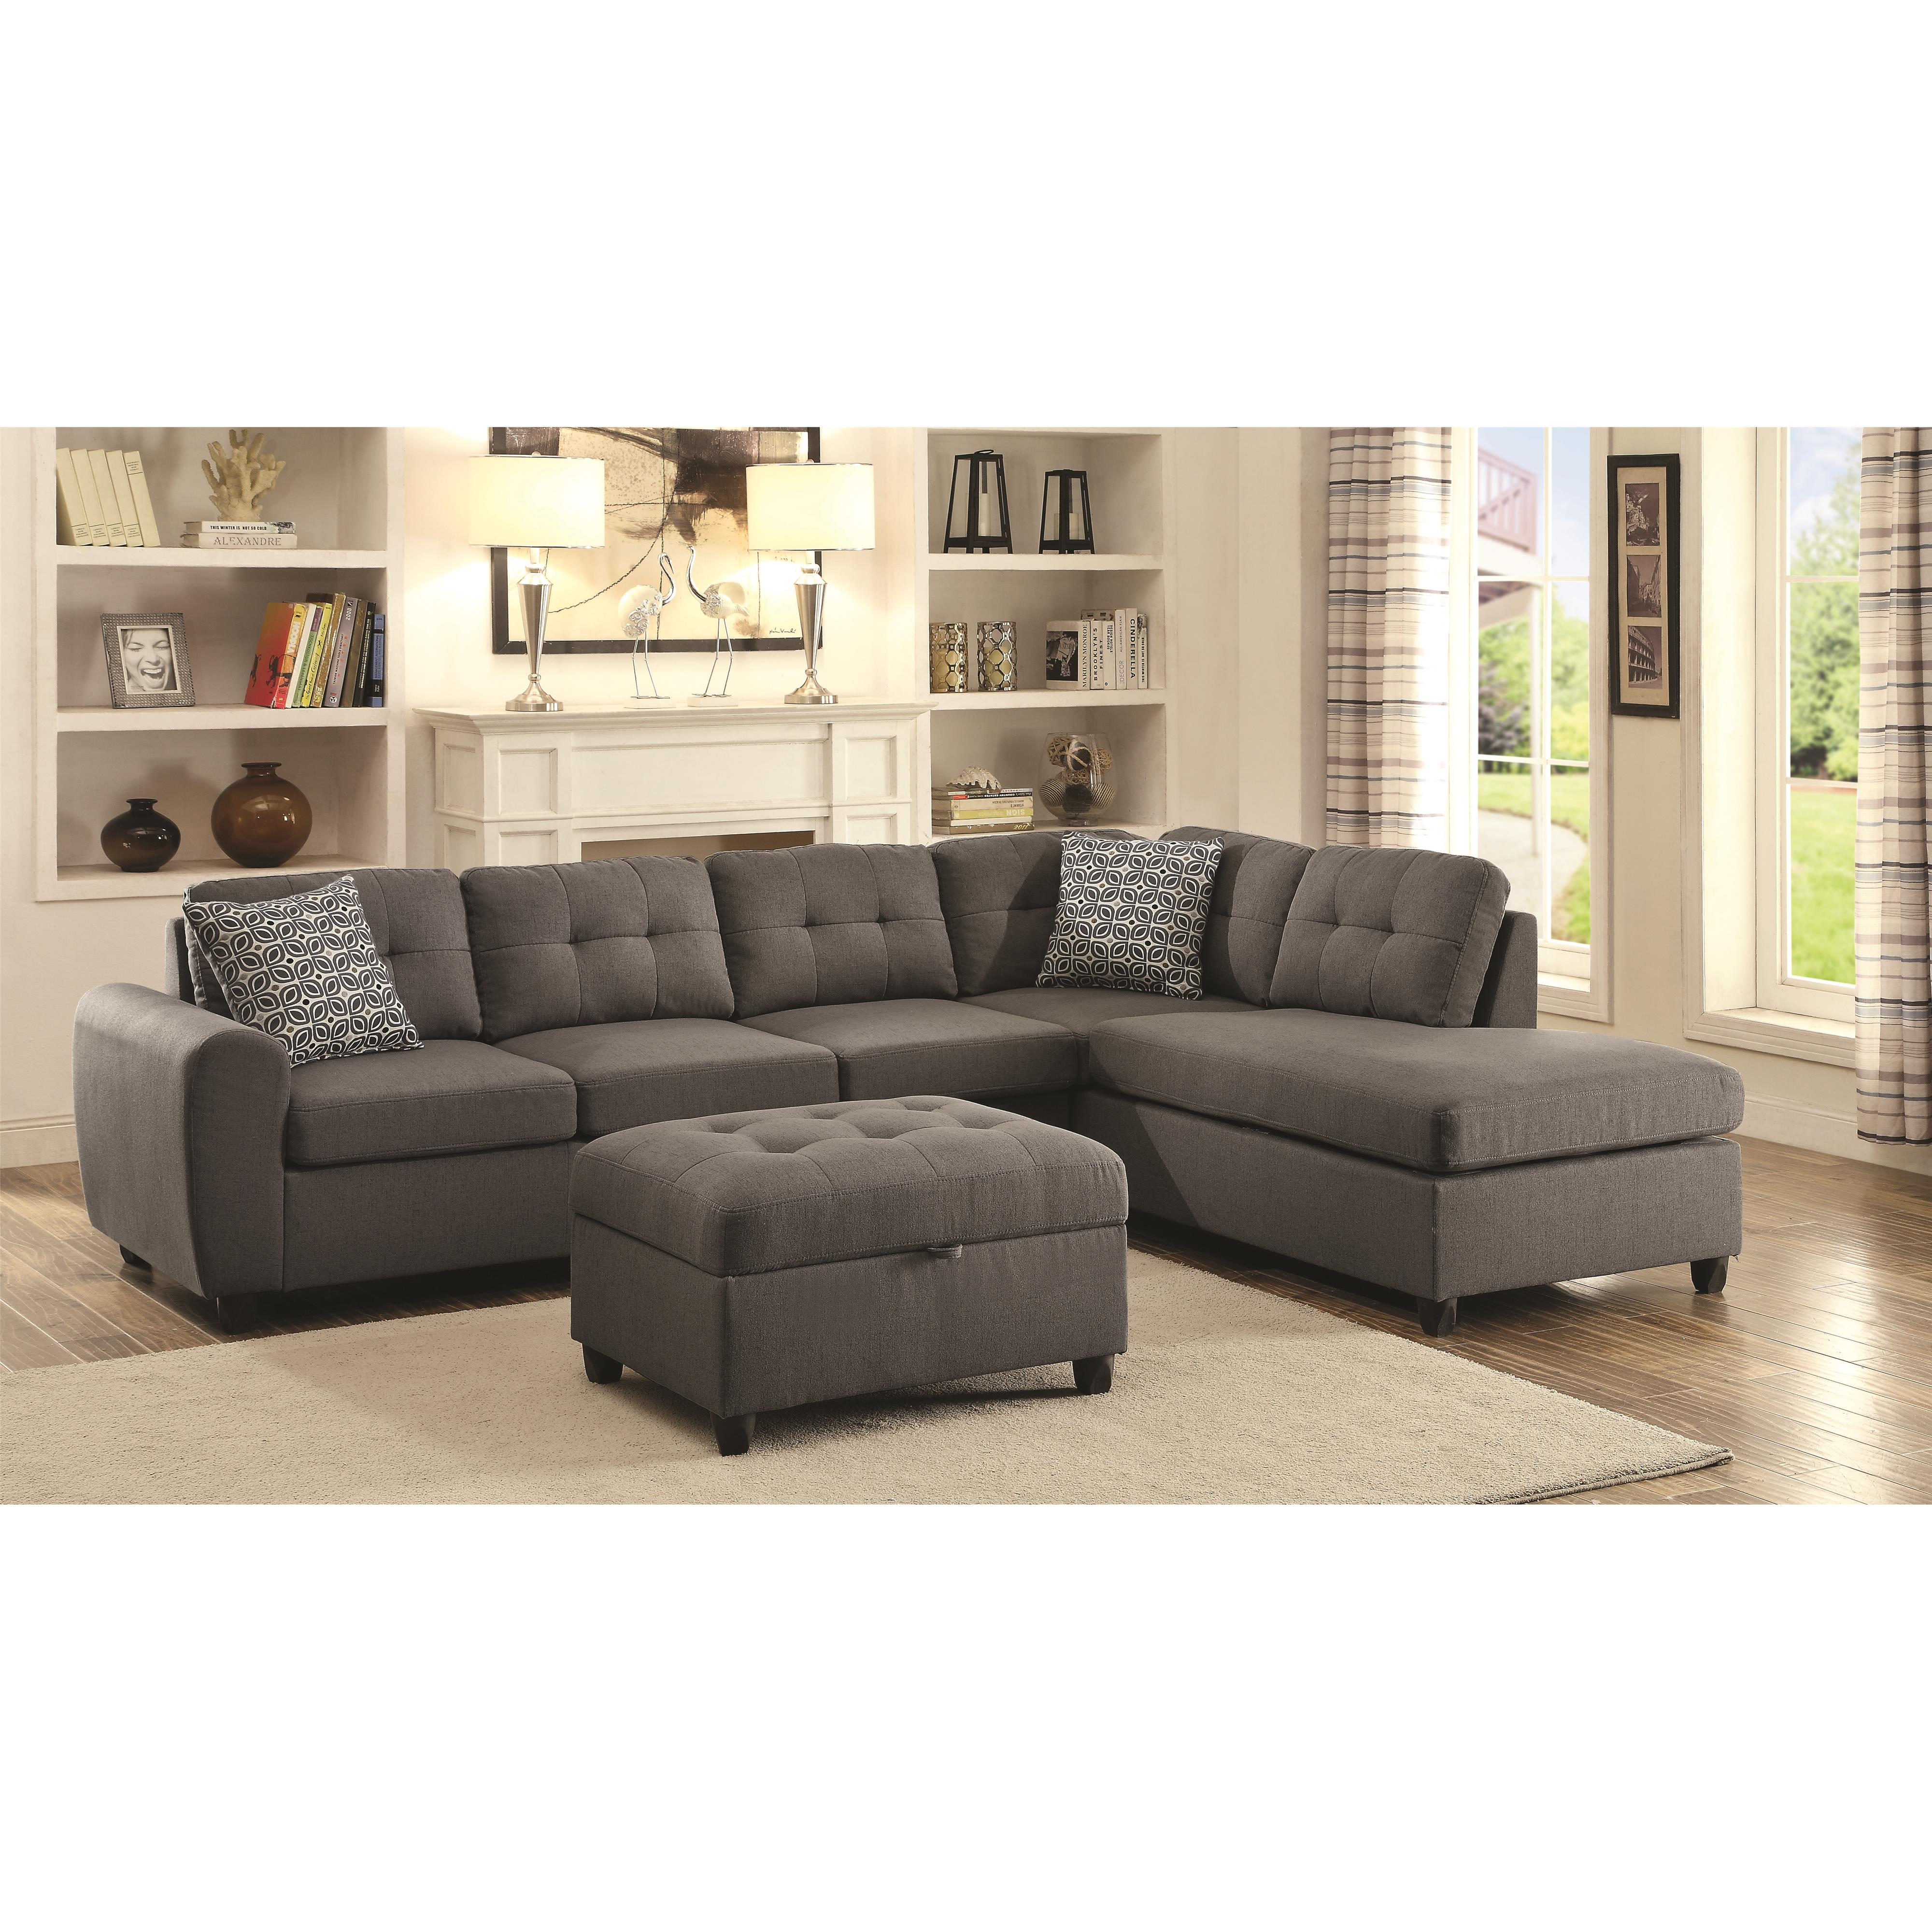 Coaster Stonenesse Sectional - Item Number: 500413